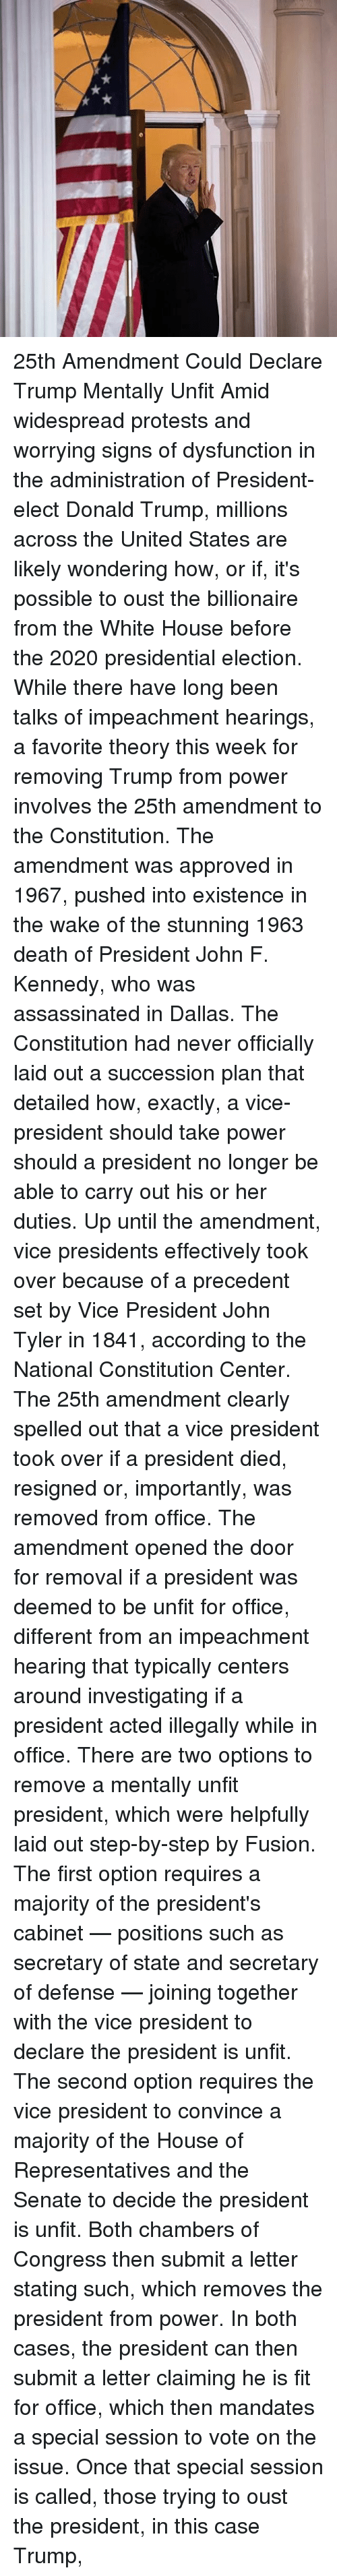 the us 25th amendment of the constitution in 1967